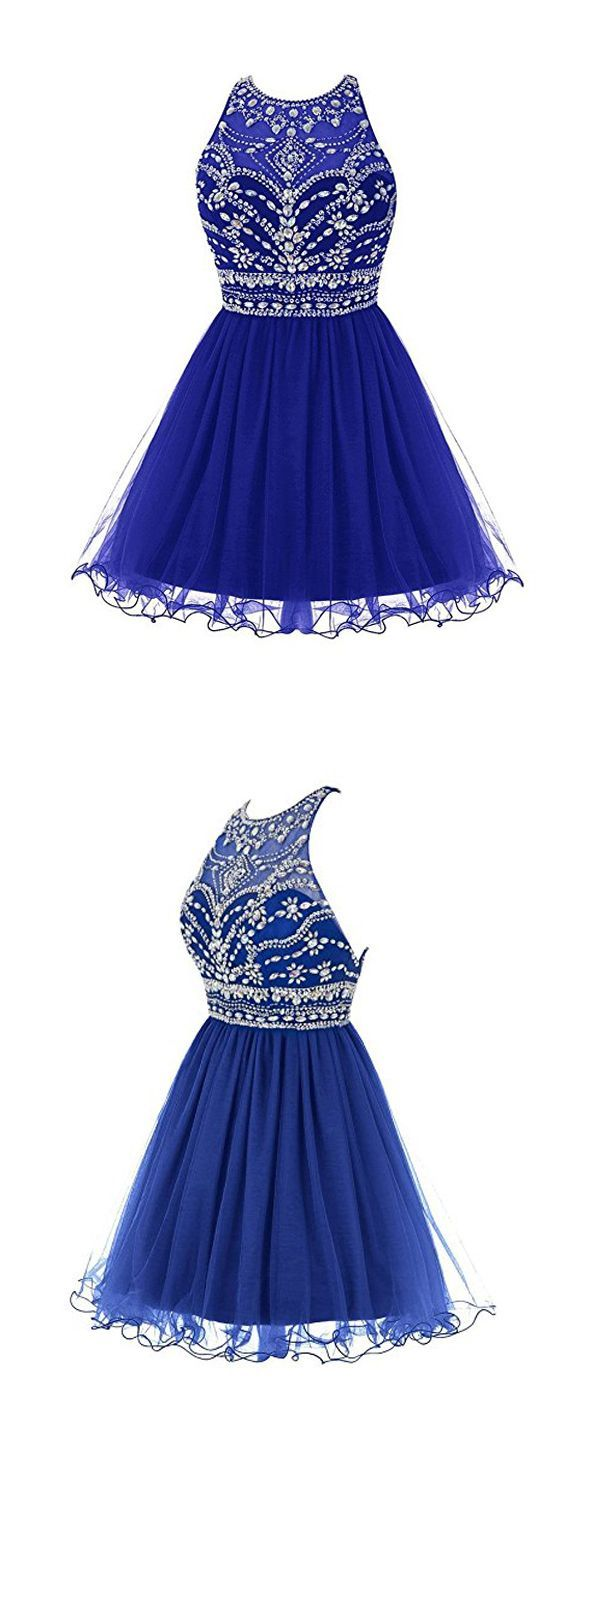 cool Royal Bule Tulle Homecoming Dresses 2016 Short Prom Gowns PG045,Homecoming Dress...